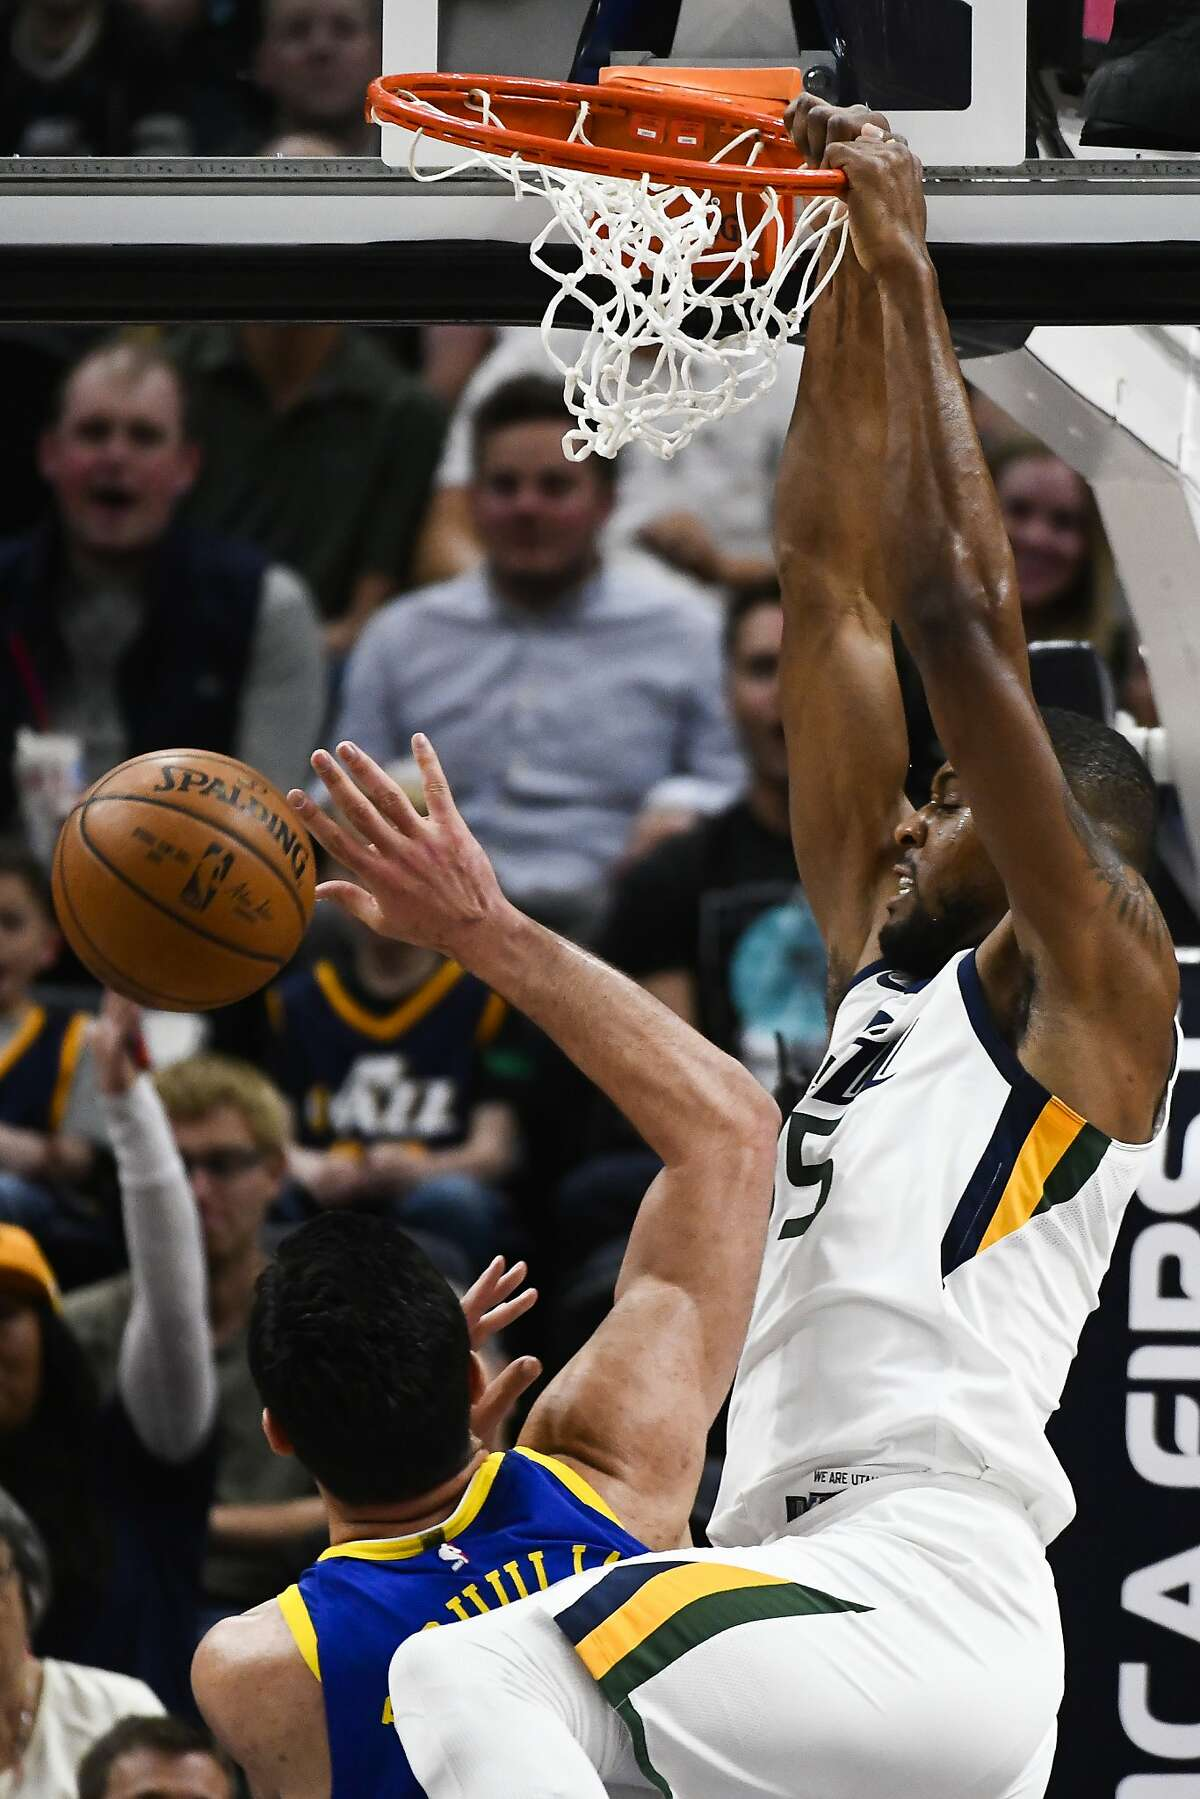 Utah Jazz forward Derrick Favors (15) dunks over Golden State Warriors center Zaza Pachulia (27) in the first half of an NBA basketball game Tuesday, April 10, 2018, in Salt Lake City. (AP Photo/Alex Goodlett)